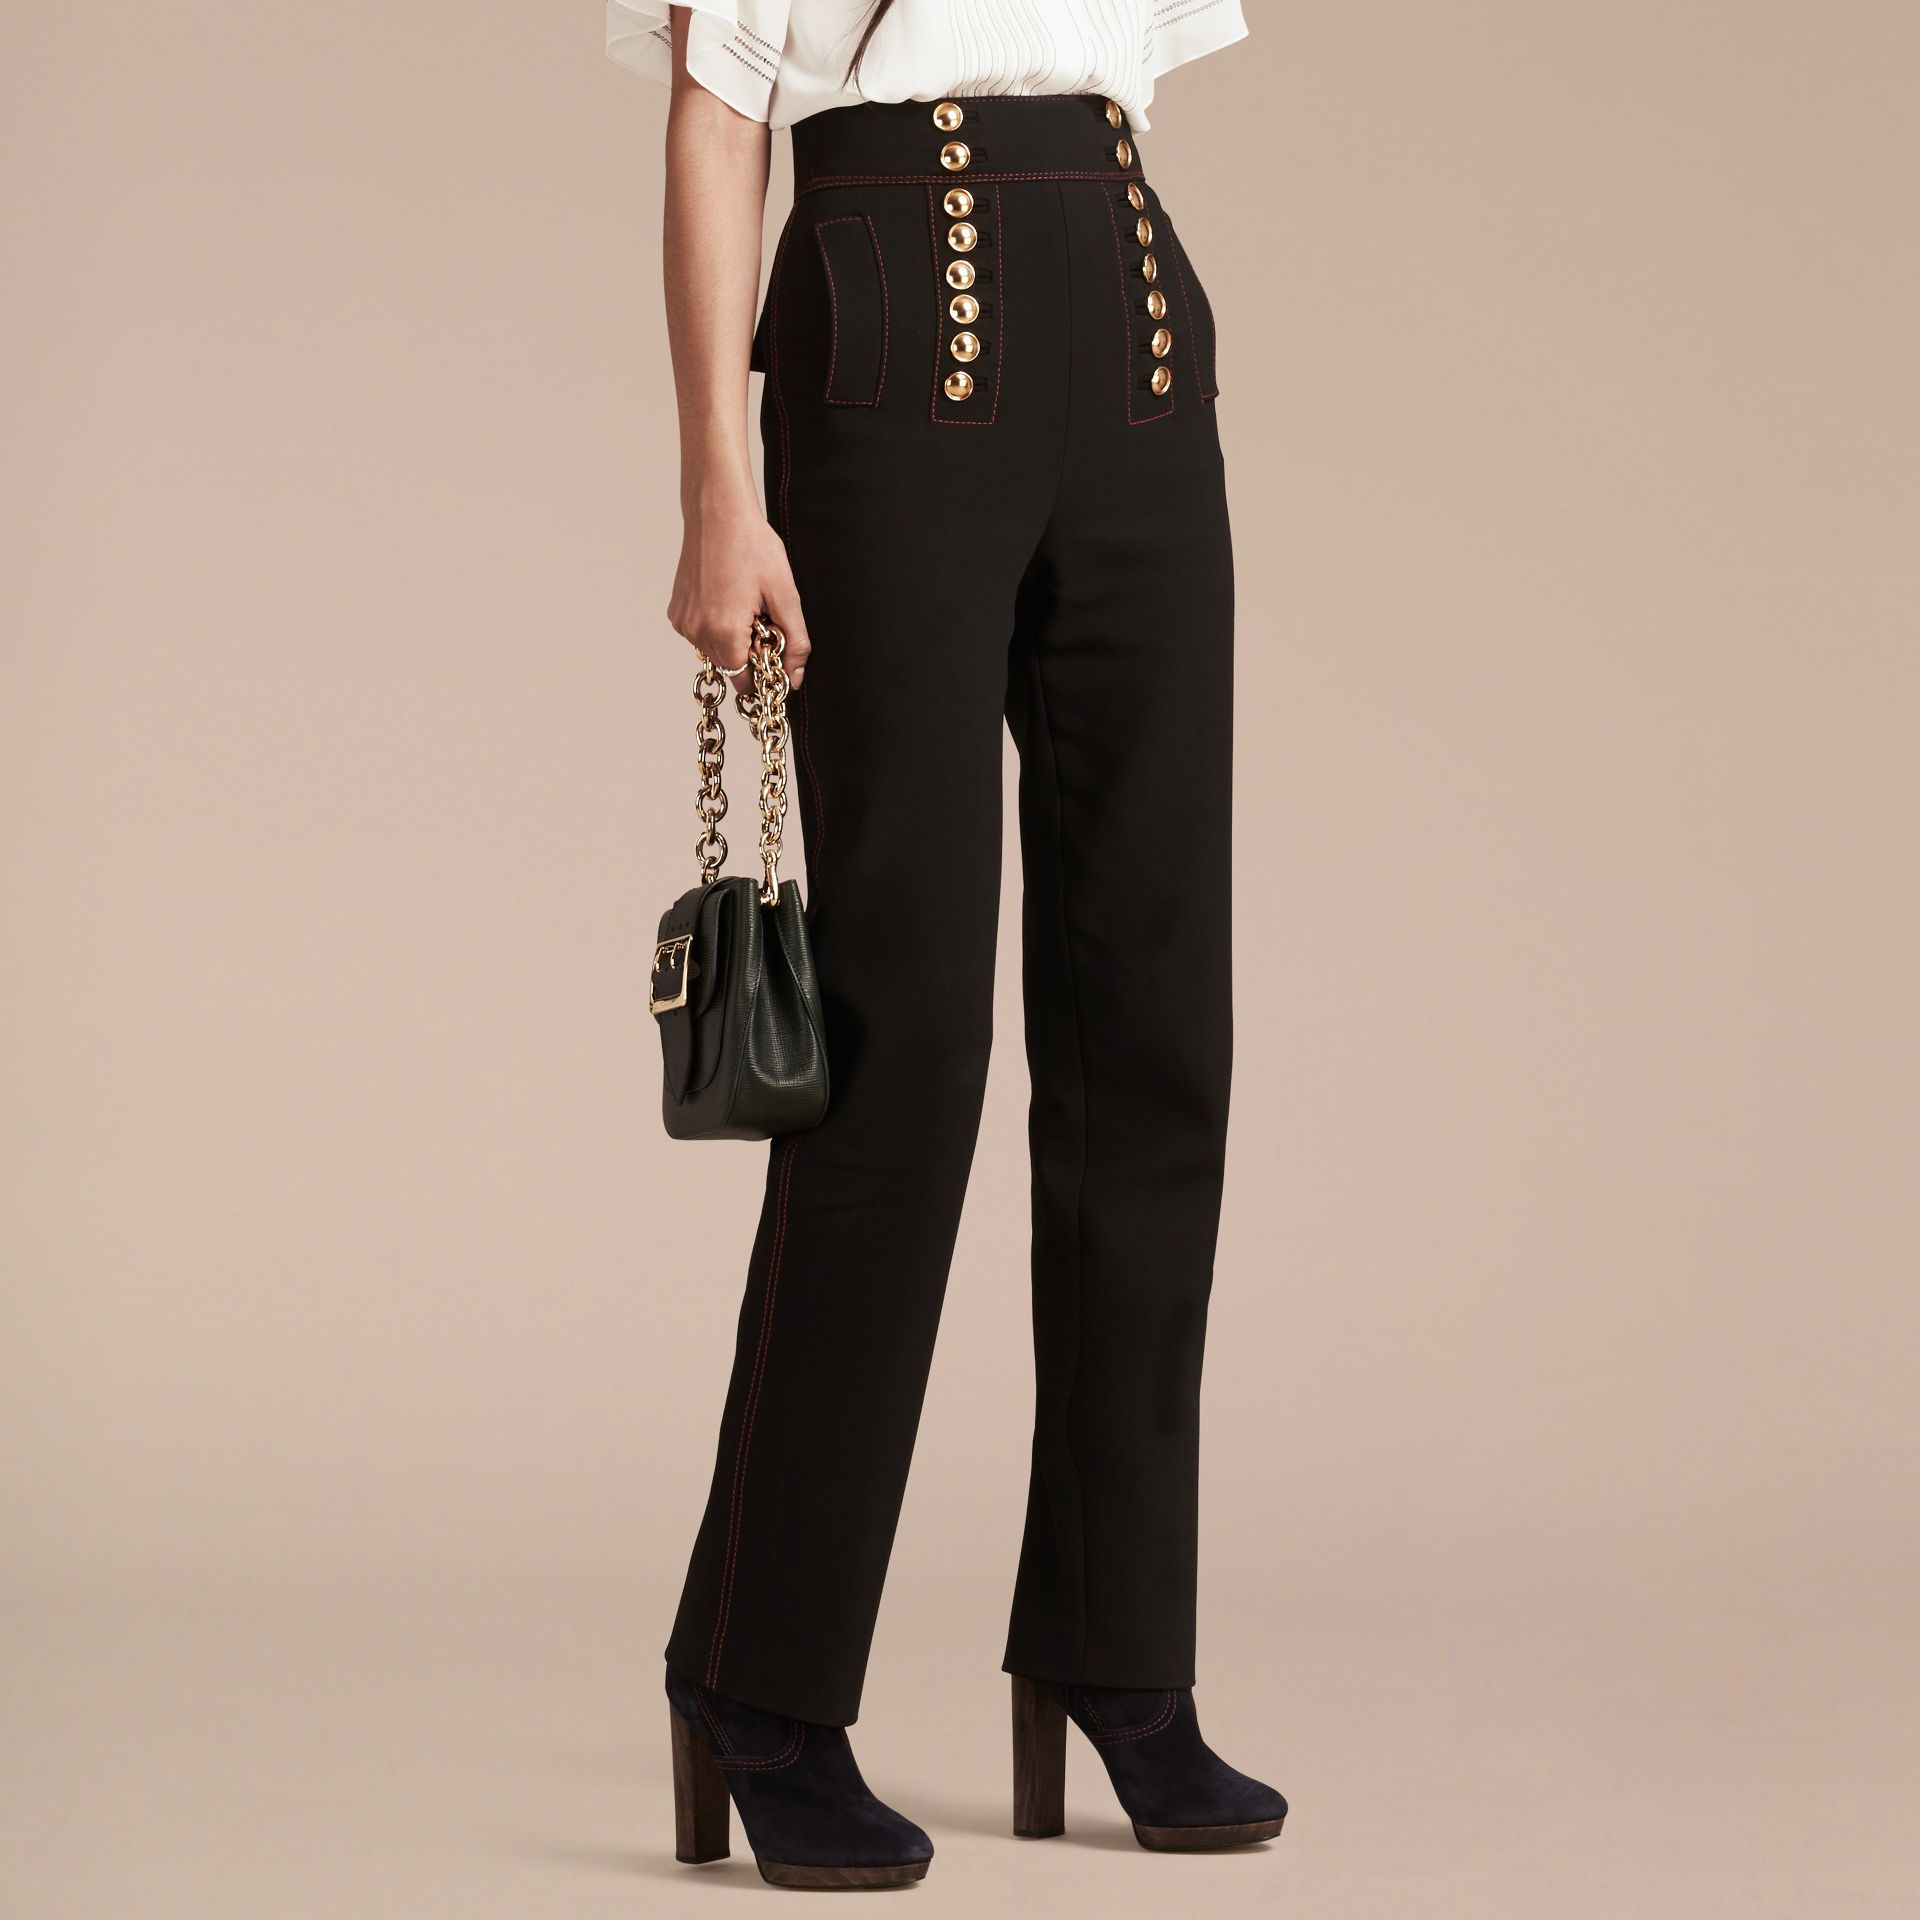 Black High-waist Stretch Military Trousers - gallery image 6